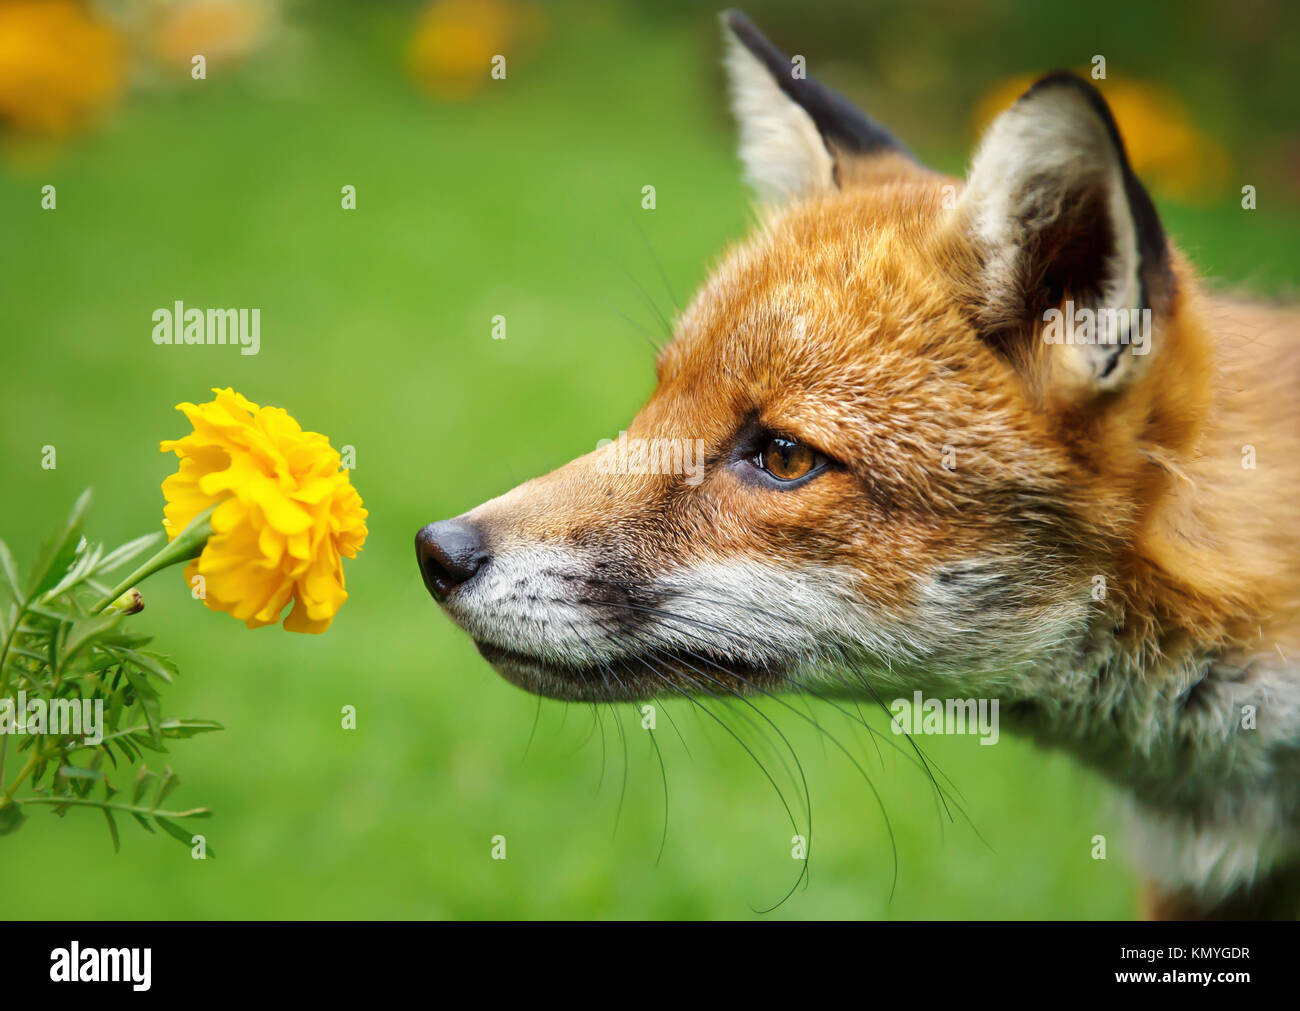 Closeup of a red fox smelling the flower marigold - Stock Image